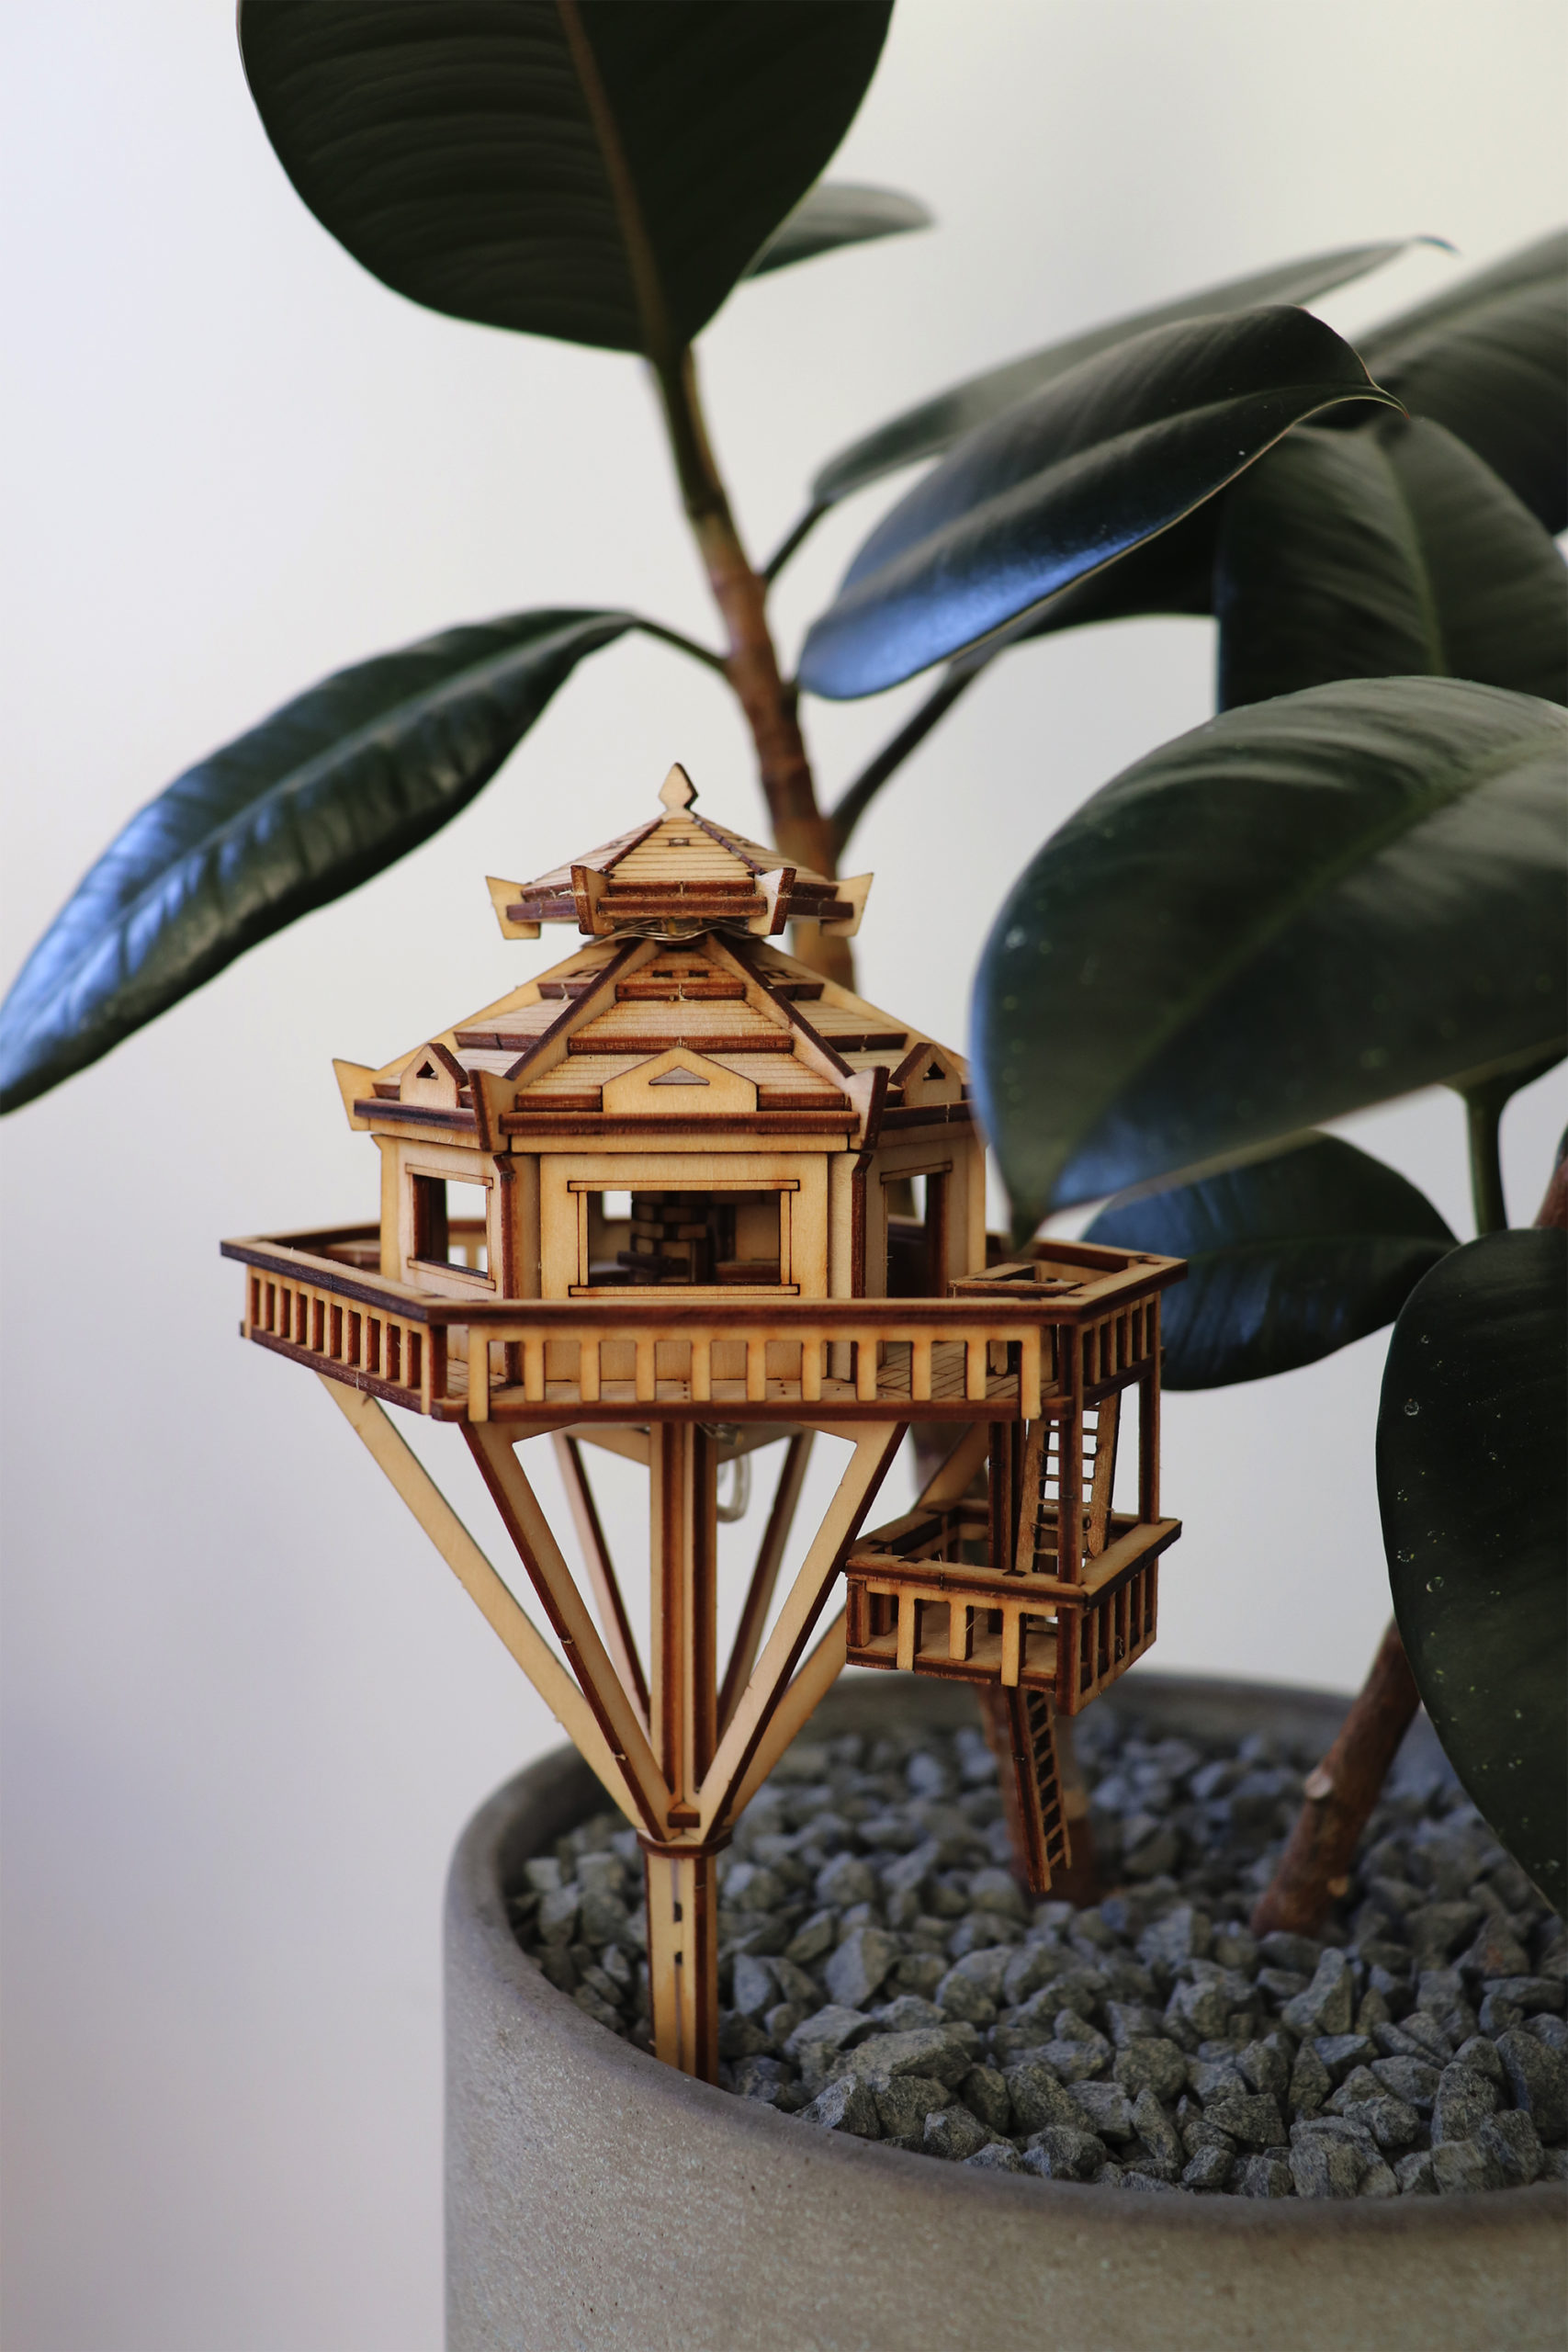 Build a Miniature Hangout with a DIY Wooden Treehouse Kit